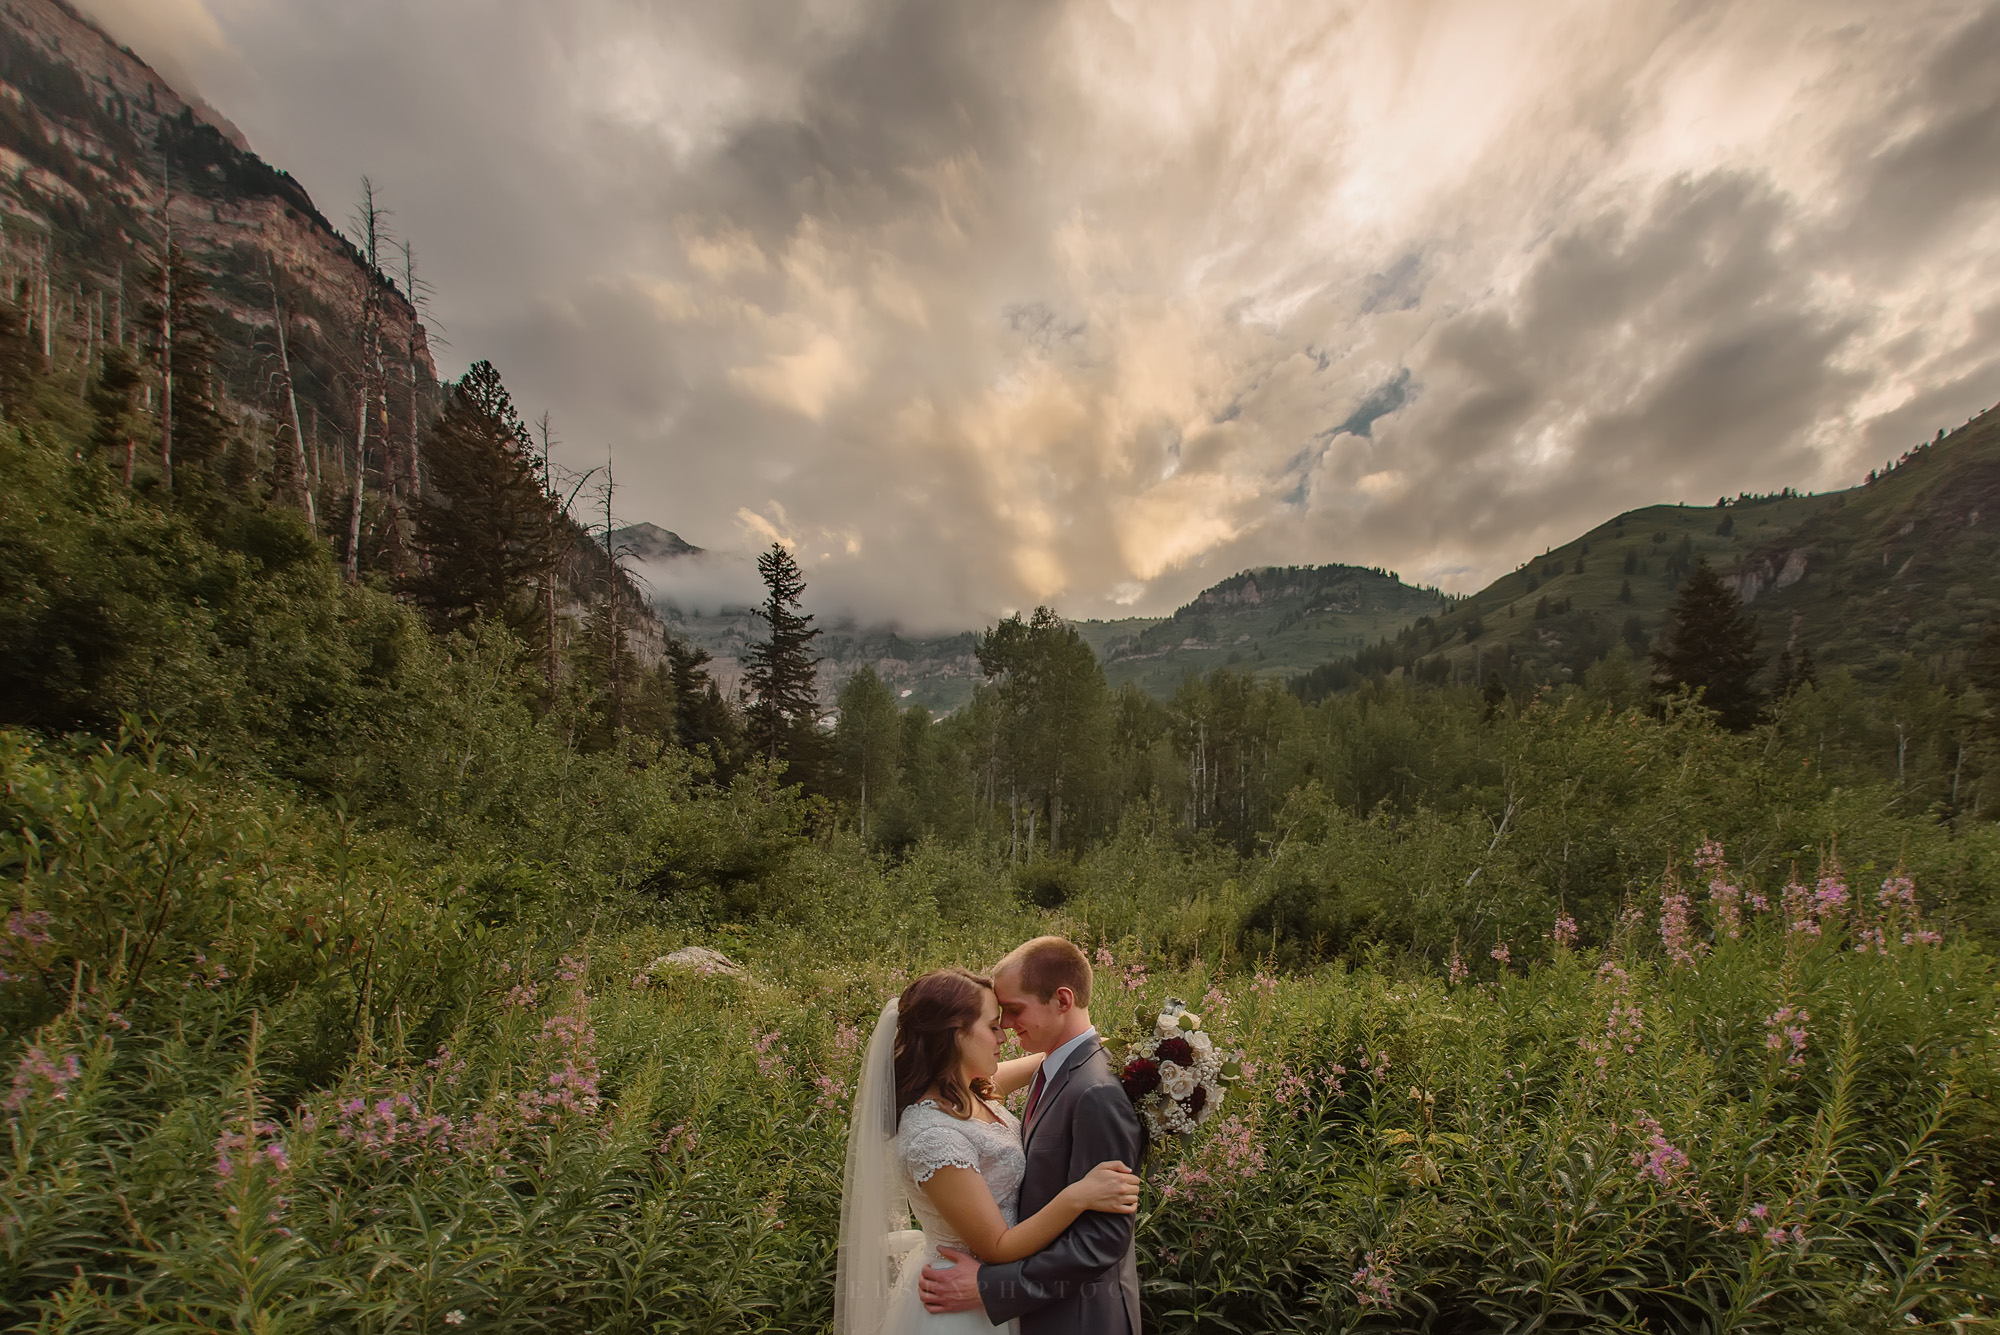 Aspen Grove wedding formals bride and groom